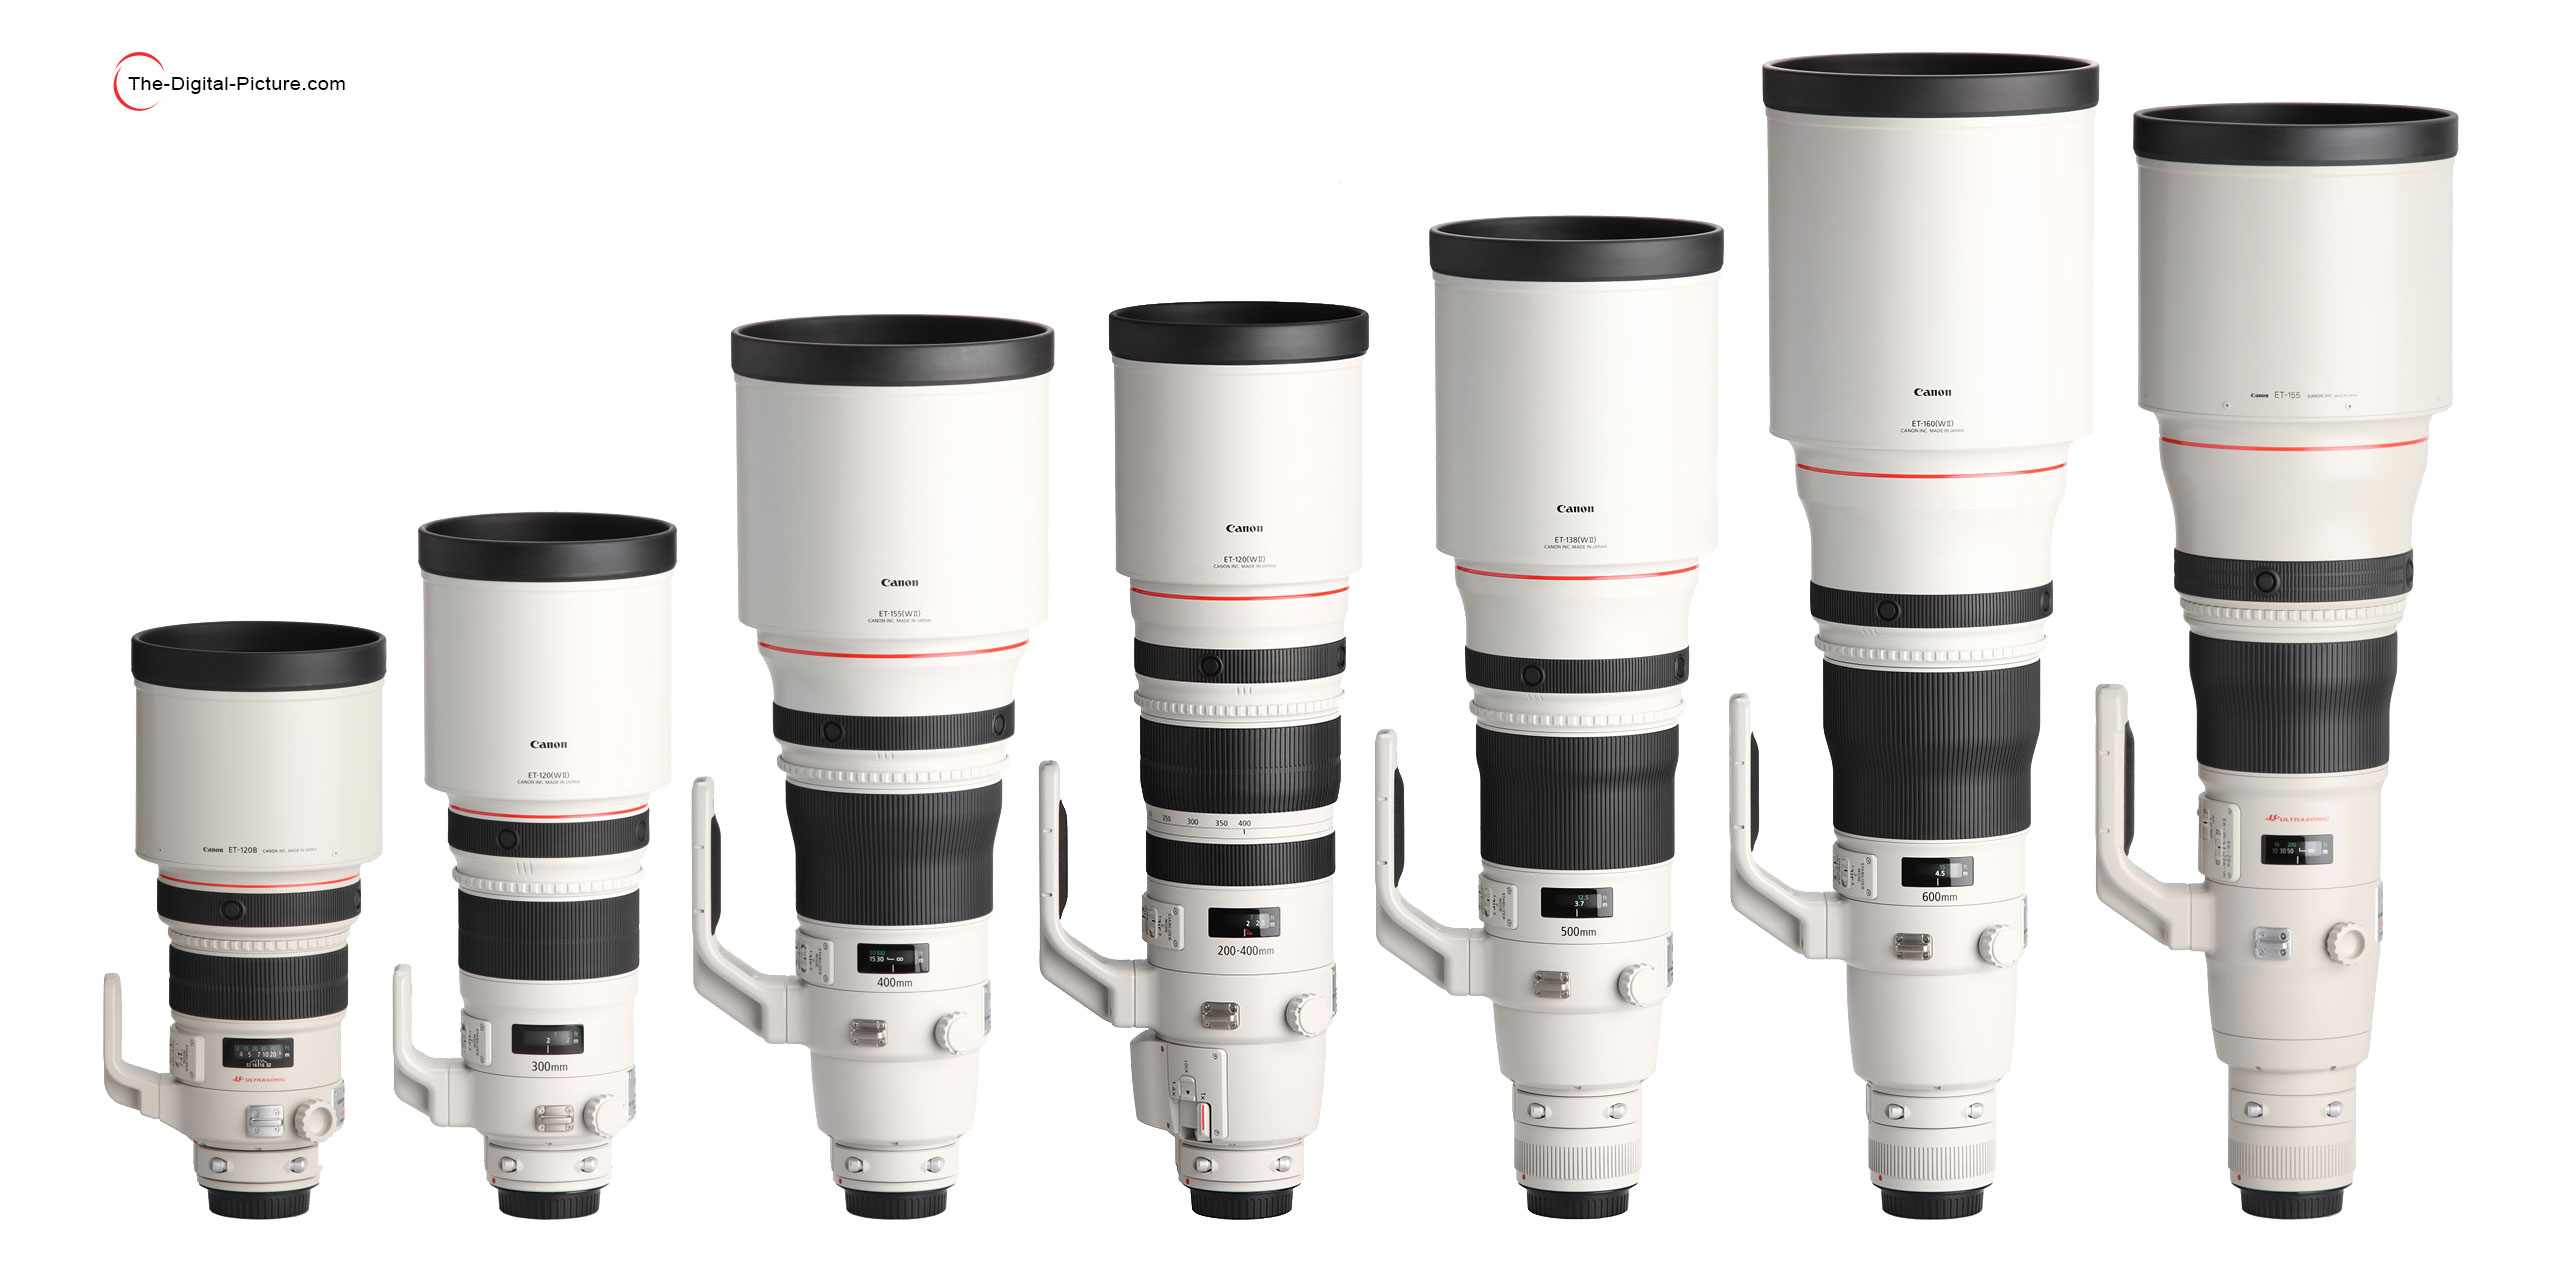 http://www.proteknikfoto.com/wp-content/uploads/2016/11/Canon-Big-White-Lenses-with-Hoods-Spring-2013.jpg